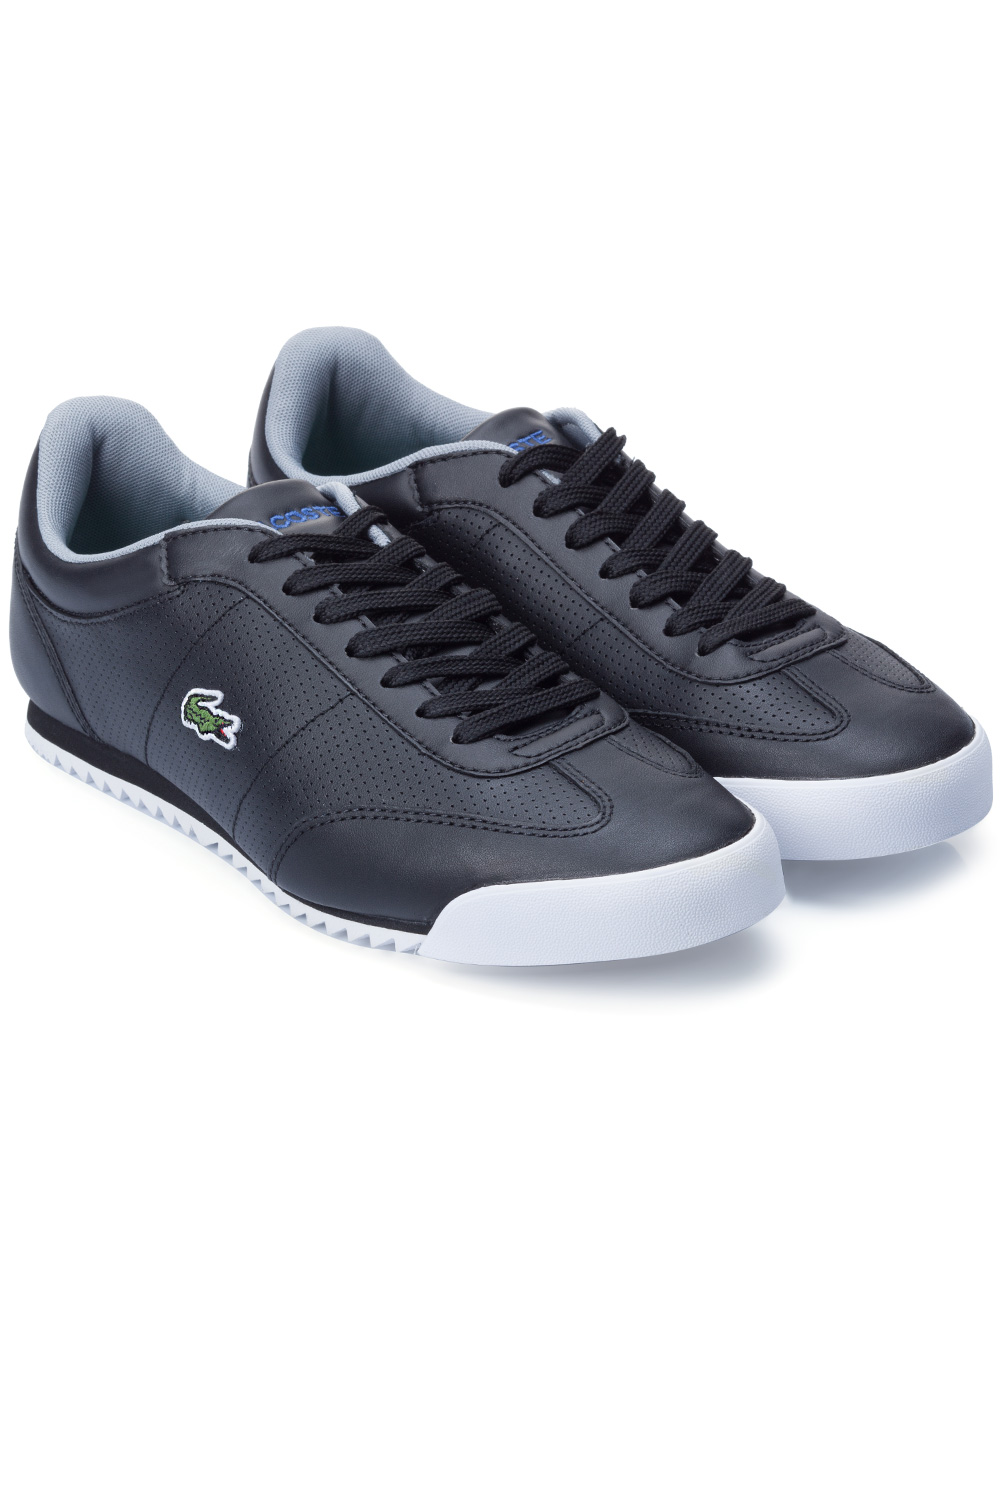 Black365ist Trainers Romeau Lacoste Lacoste Grv wPkn80OX